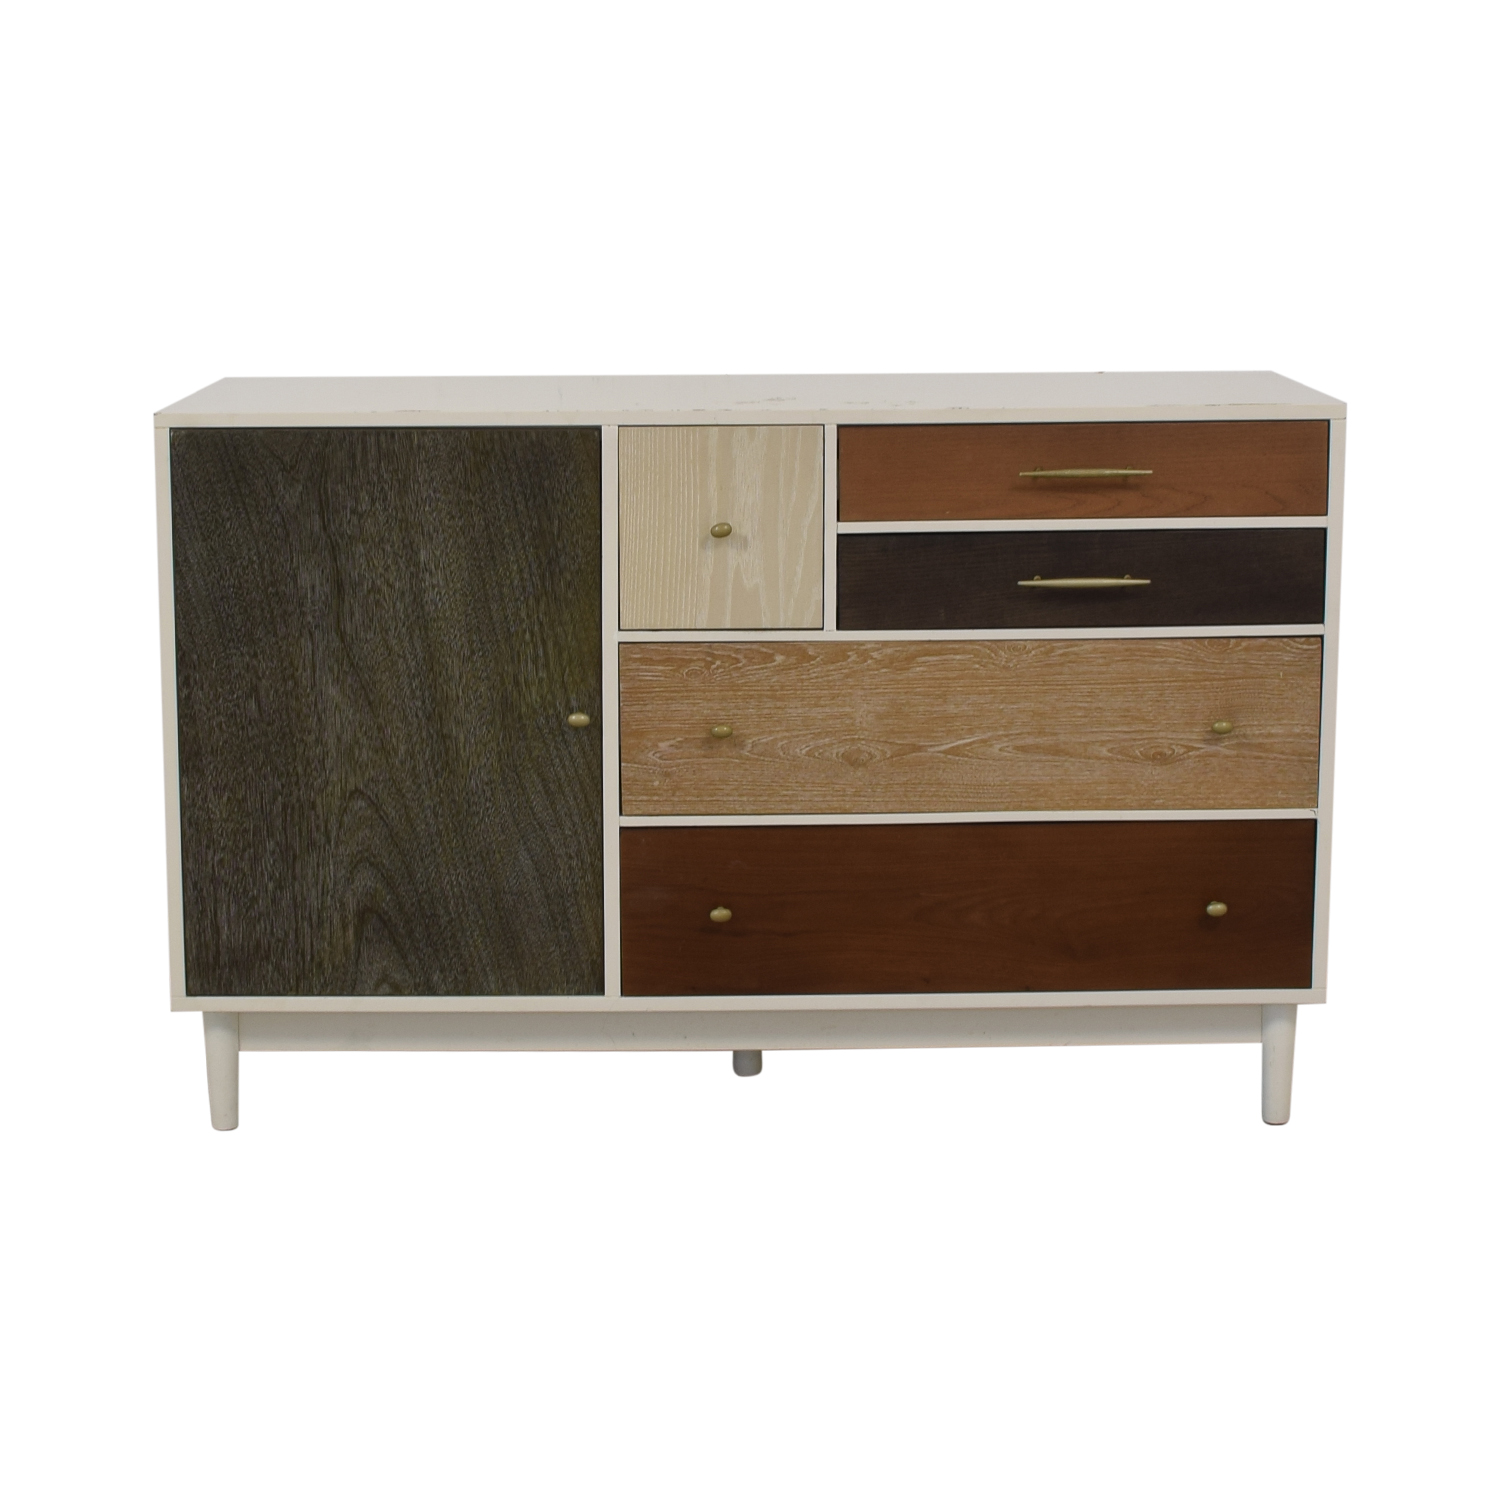 West Elm West Elm Patchwork Dresser price